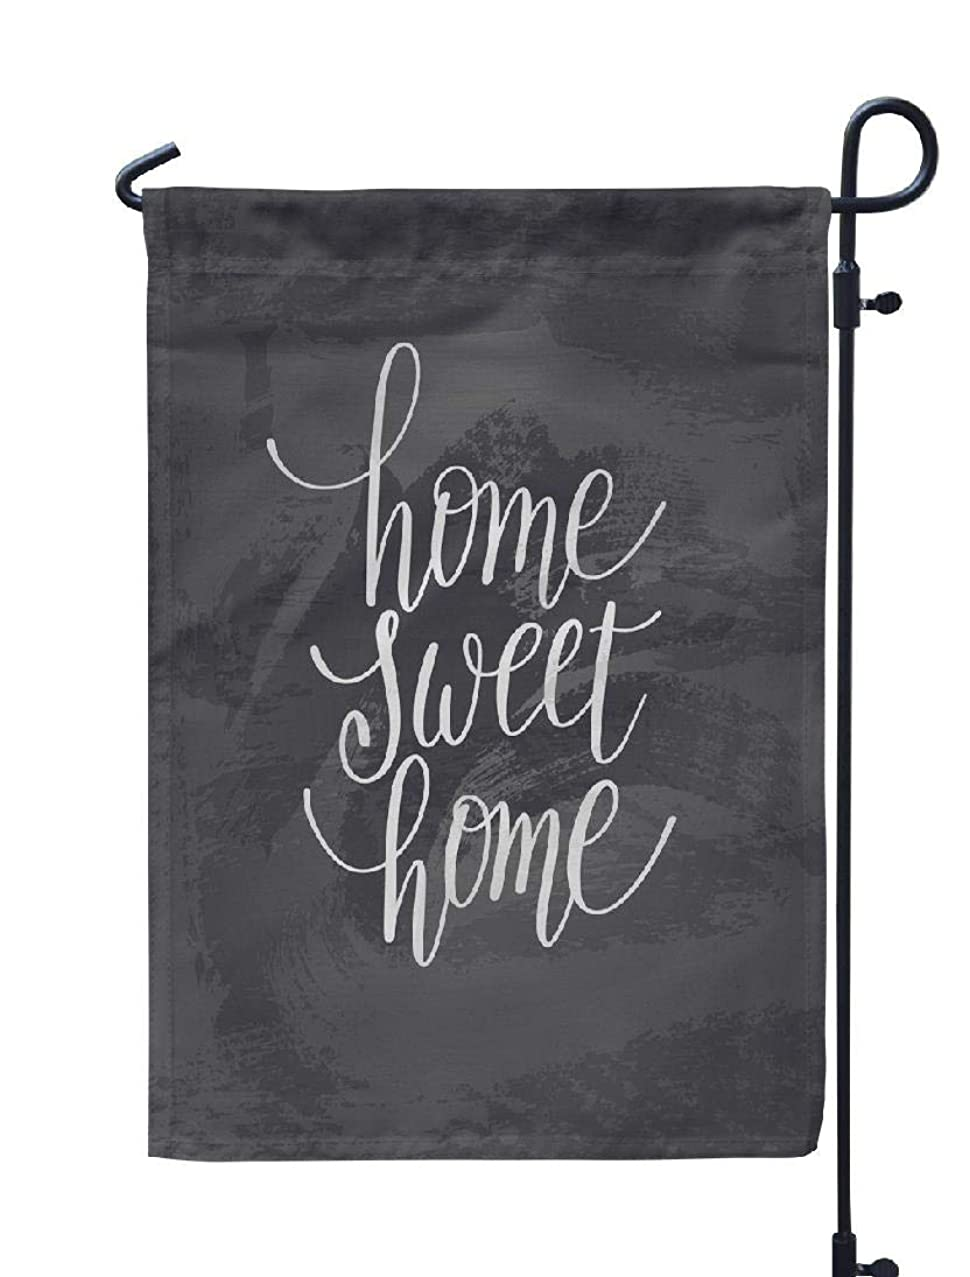 Soopat Home Sweet Home Seasonal Flag, Home Sweet Home Sweet Home Greeting Card Weatherproof Double Stitched Outdoor Decorative Flags for Garden Yard 12''L x 18''W Welcome Garden Flag